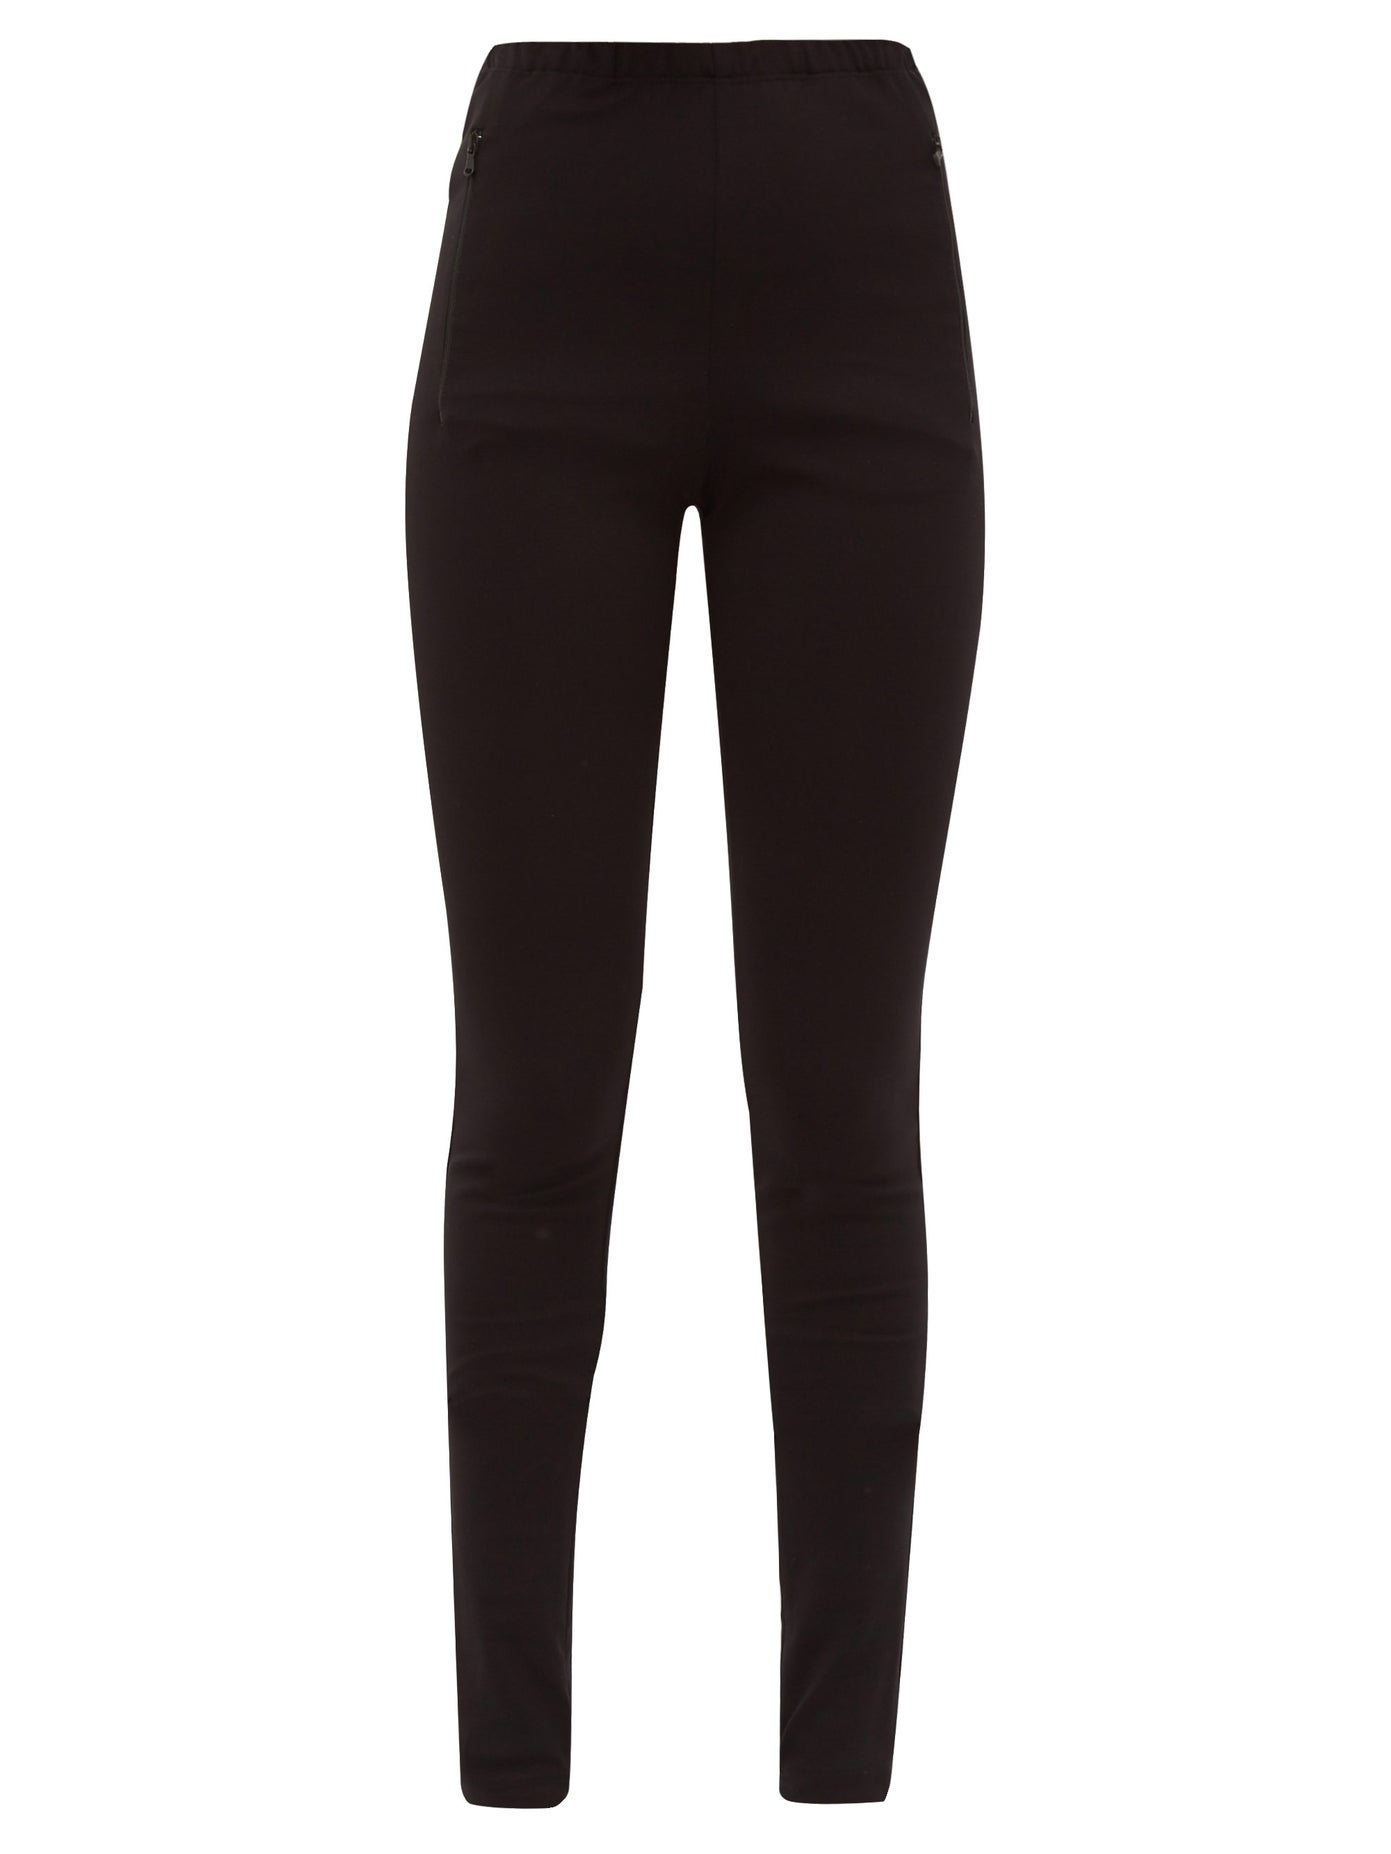 Release 03 Zip Cuff Leggings by Wardrobe.Nyc, available on matchesfashion.com for $283 Kendall Jenner Pants Exact Product